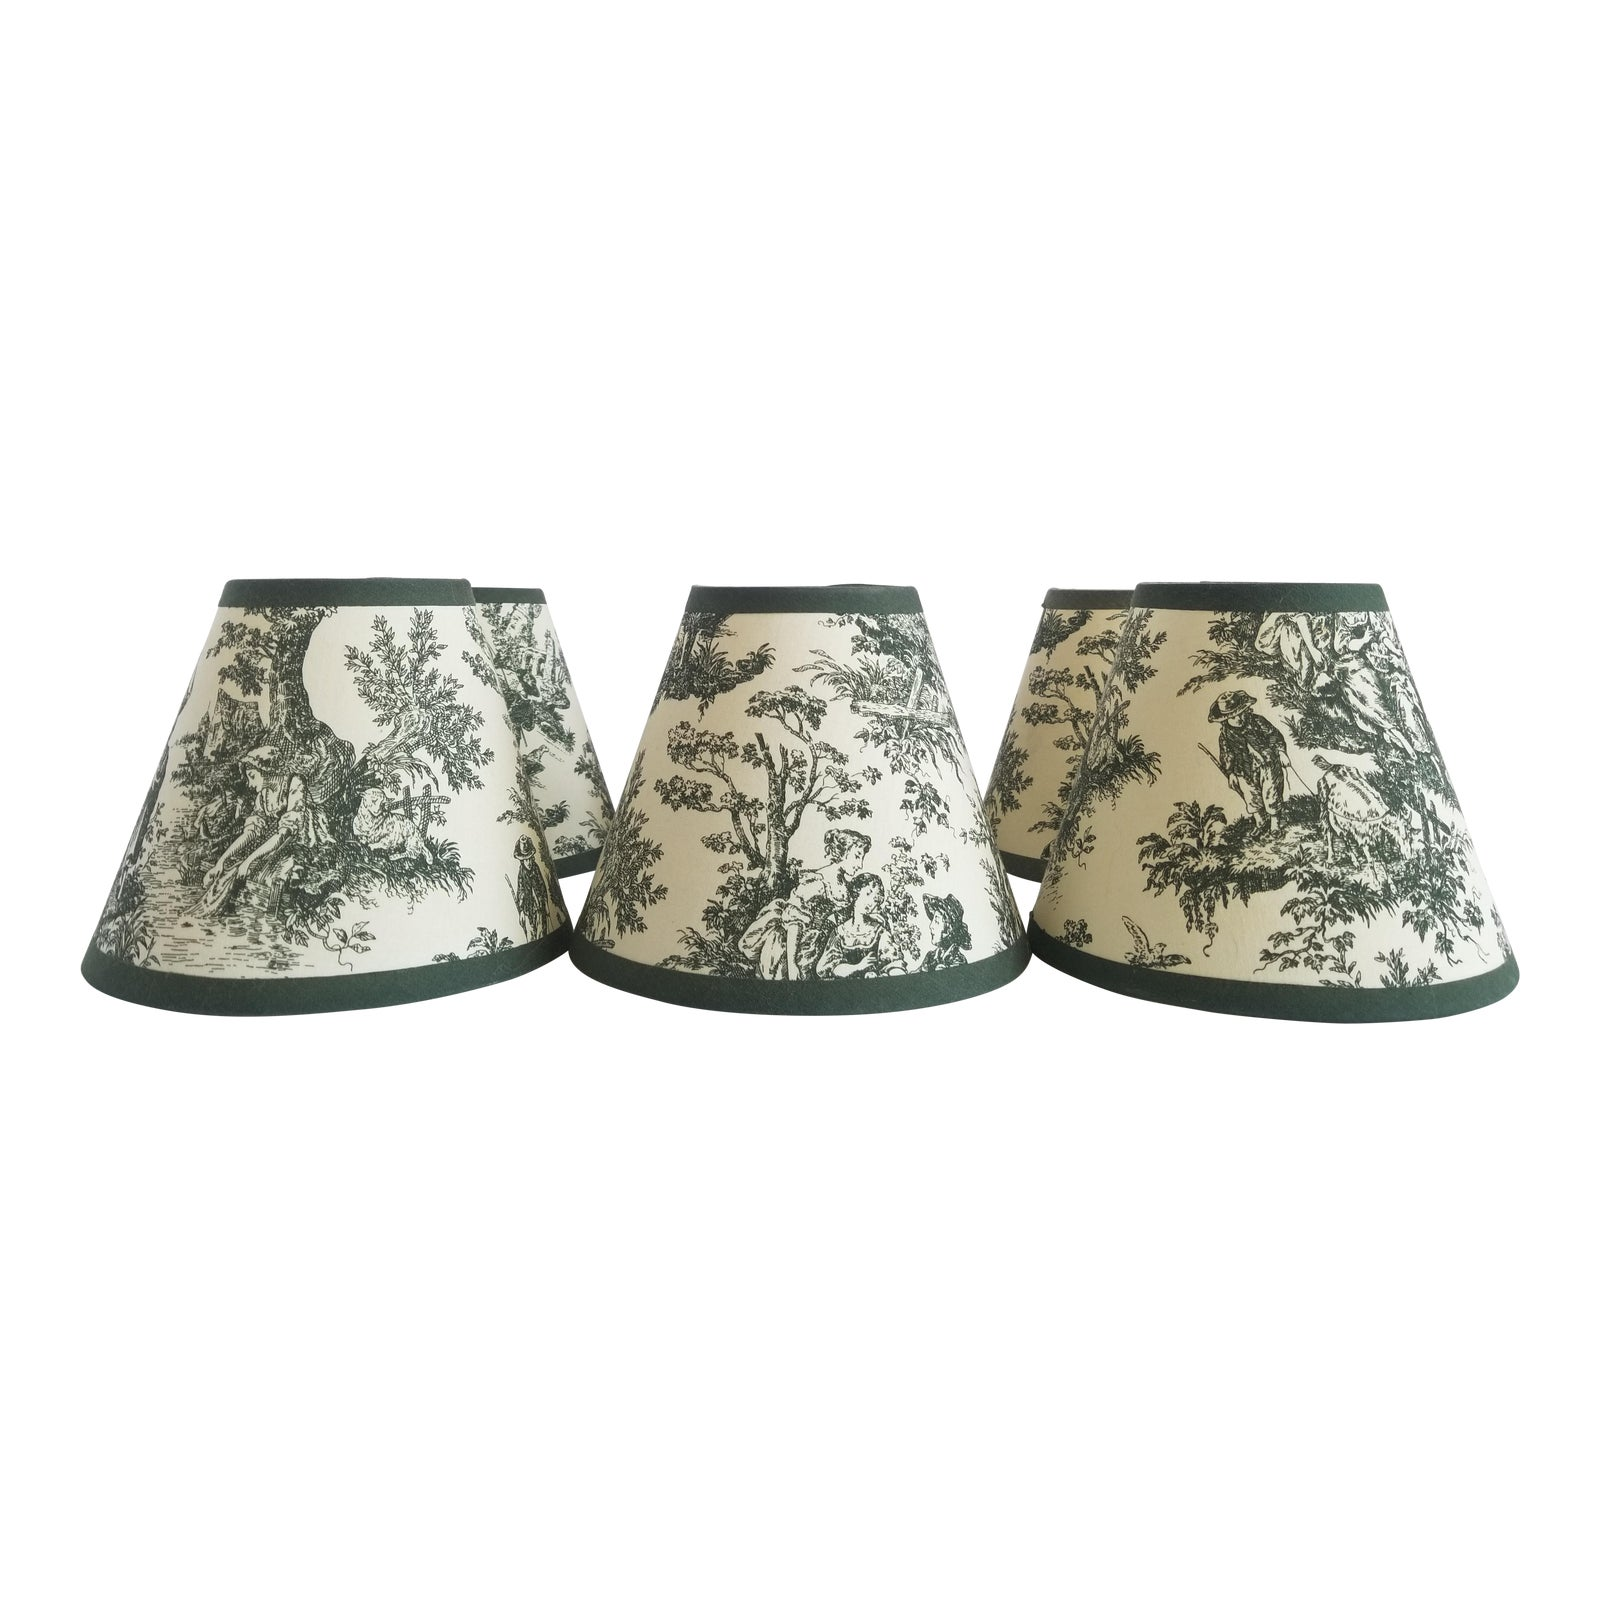 Vintage French Toile Lamp Shades Set Of 6